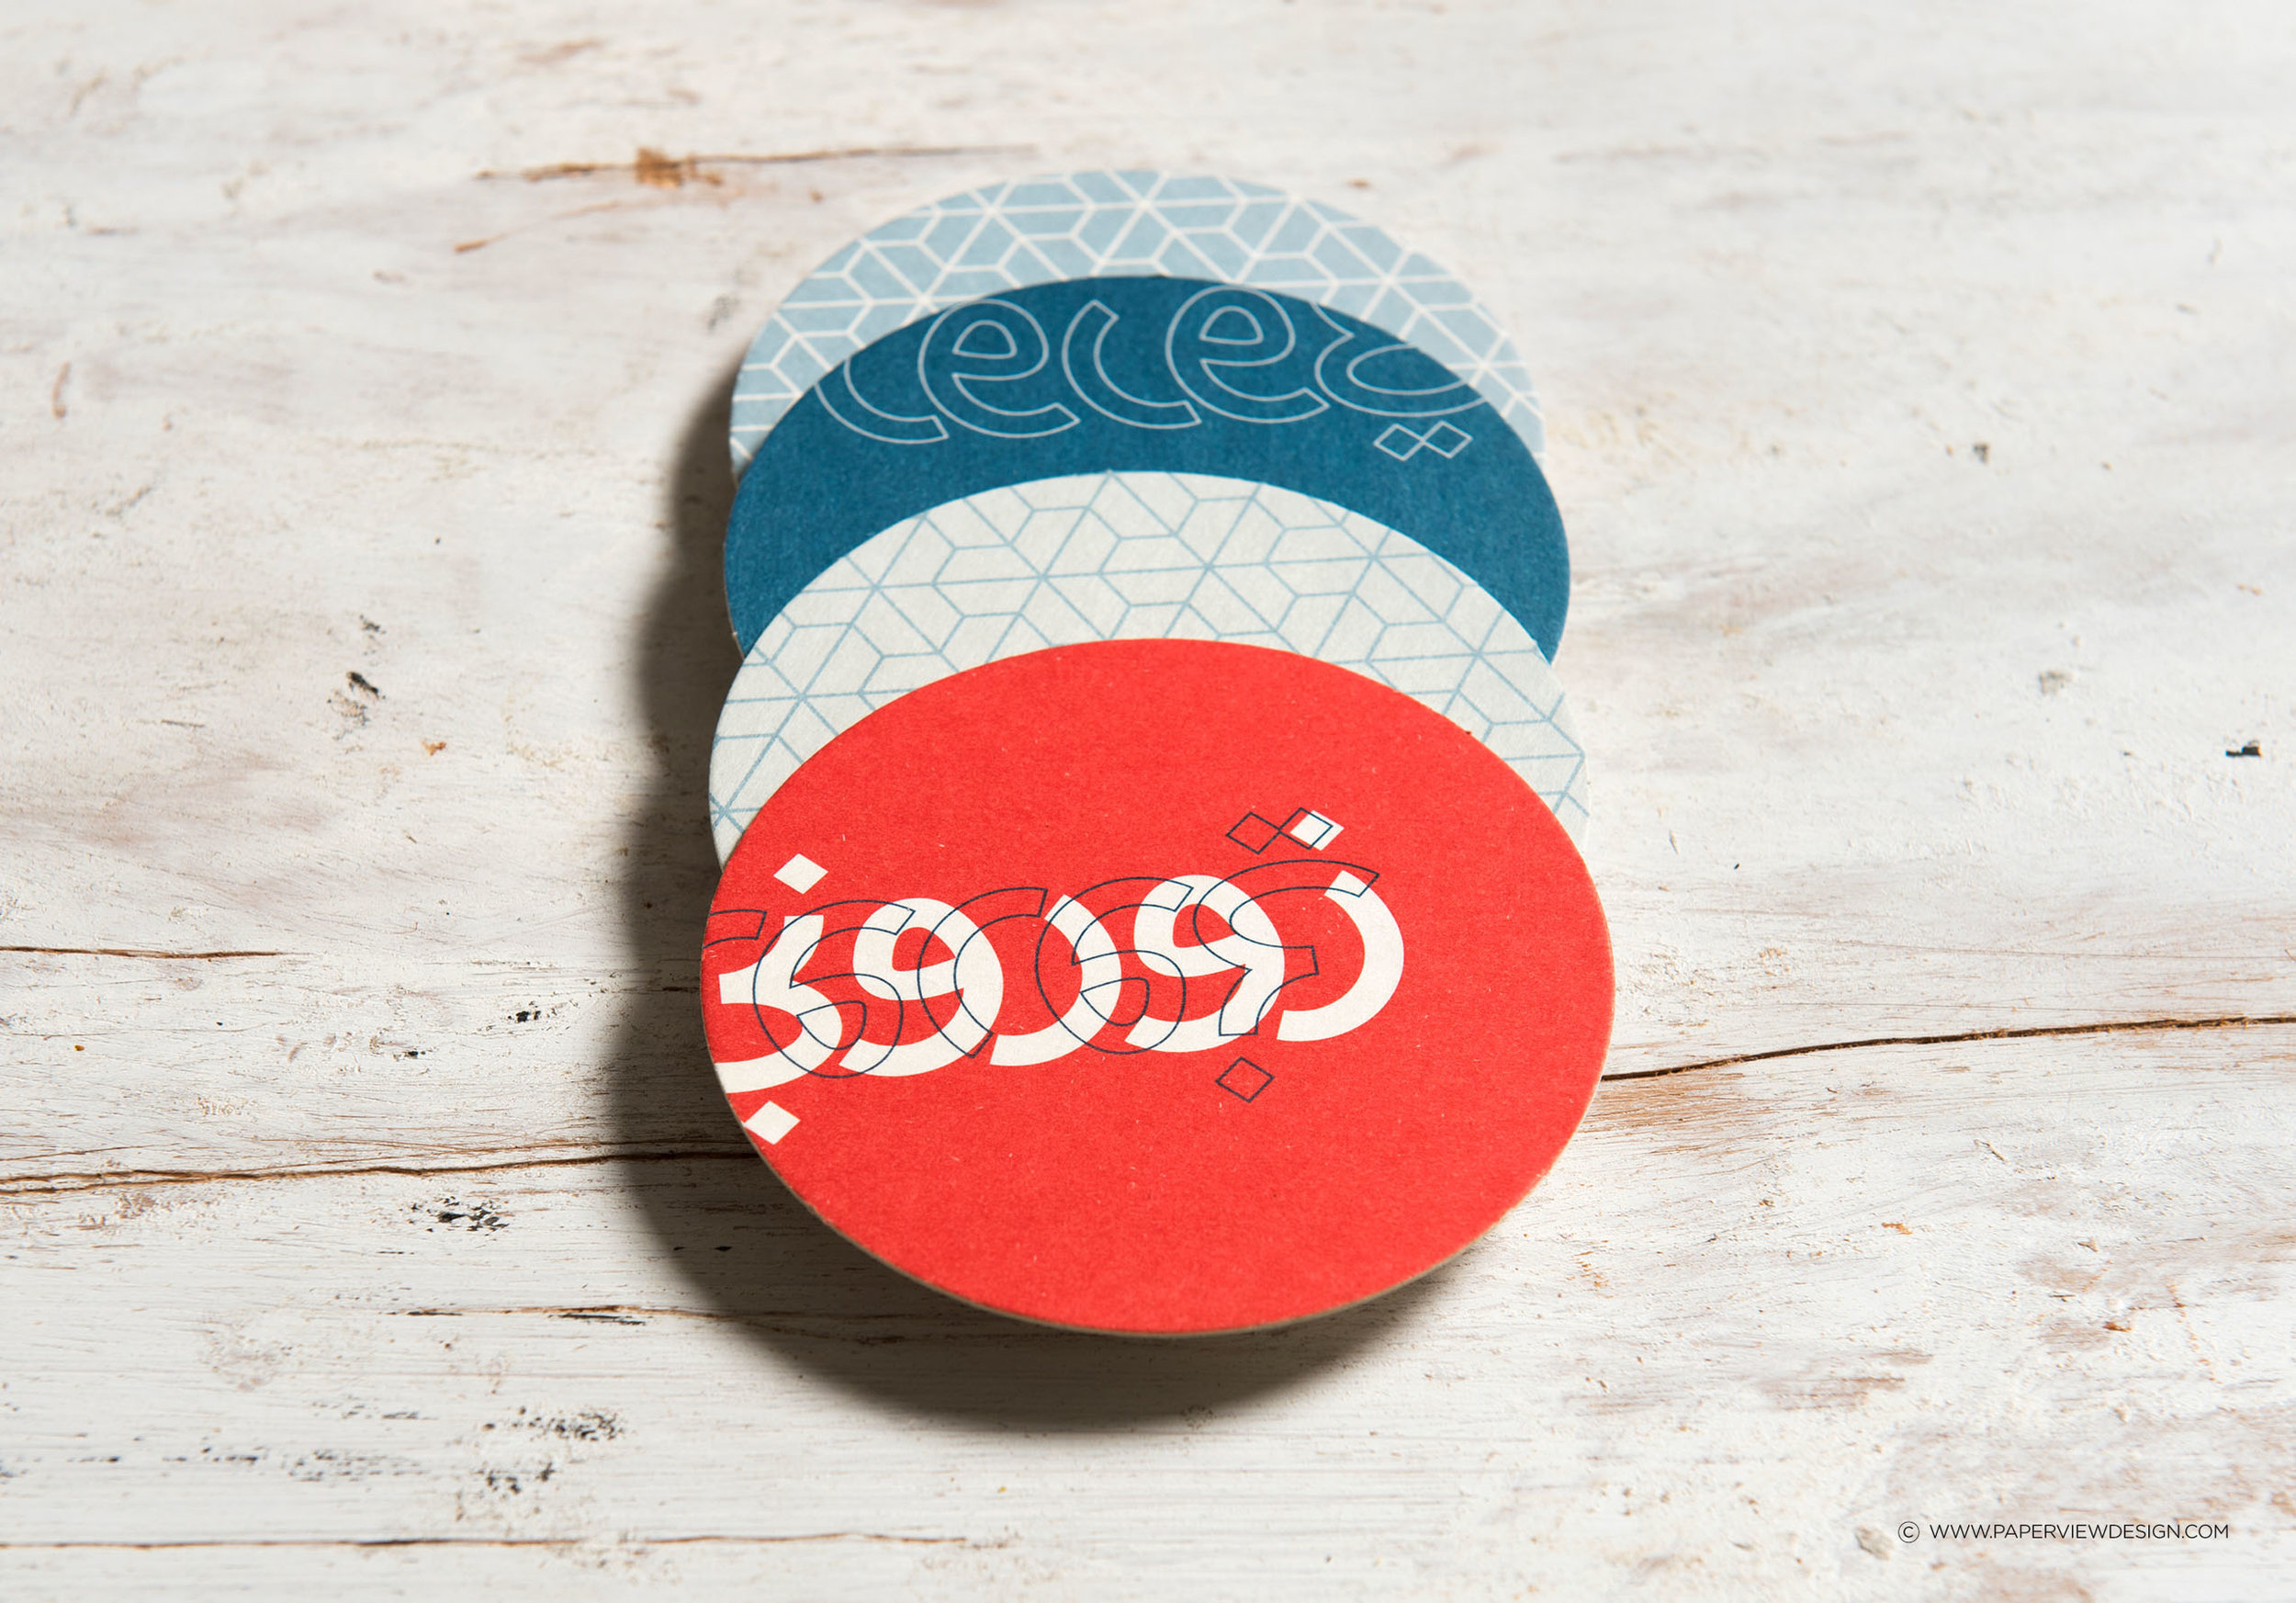 Zuruni-Bill-Holder-Restaurant-Design-Branding-Coasters